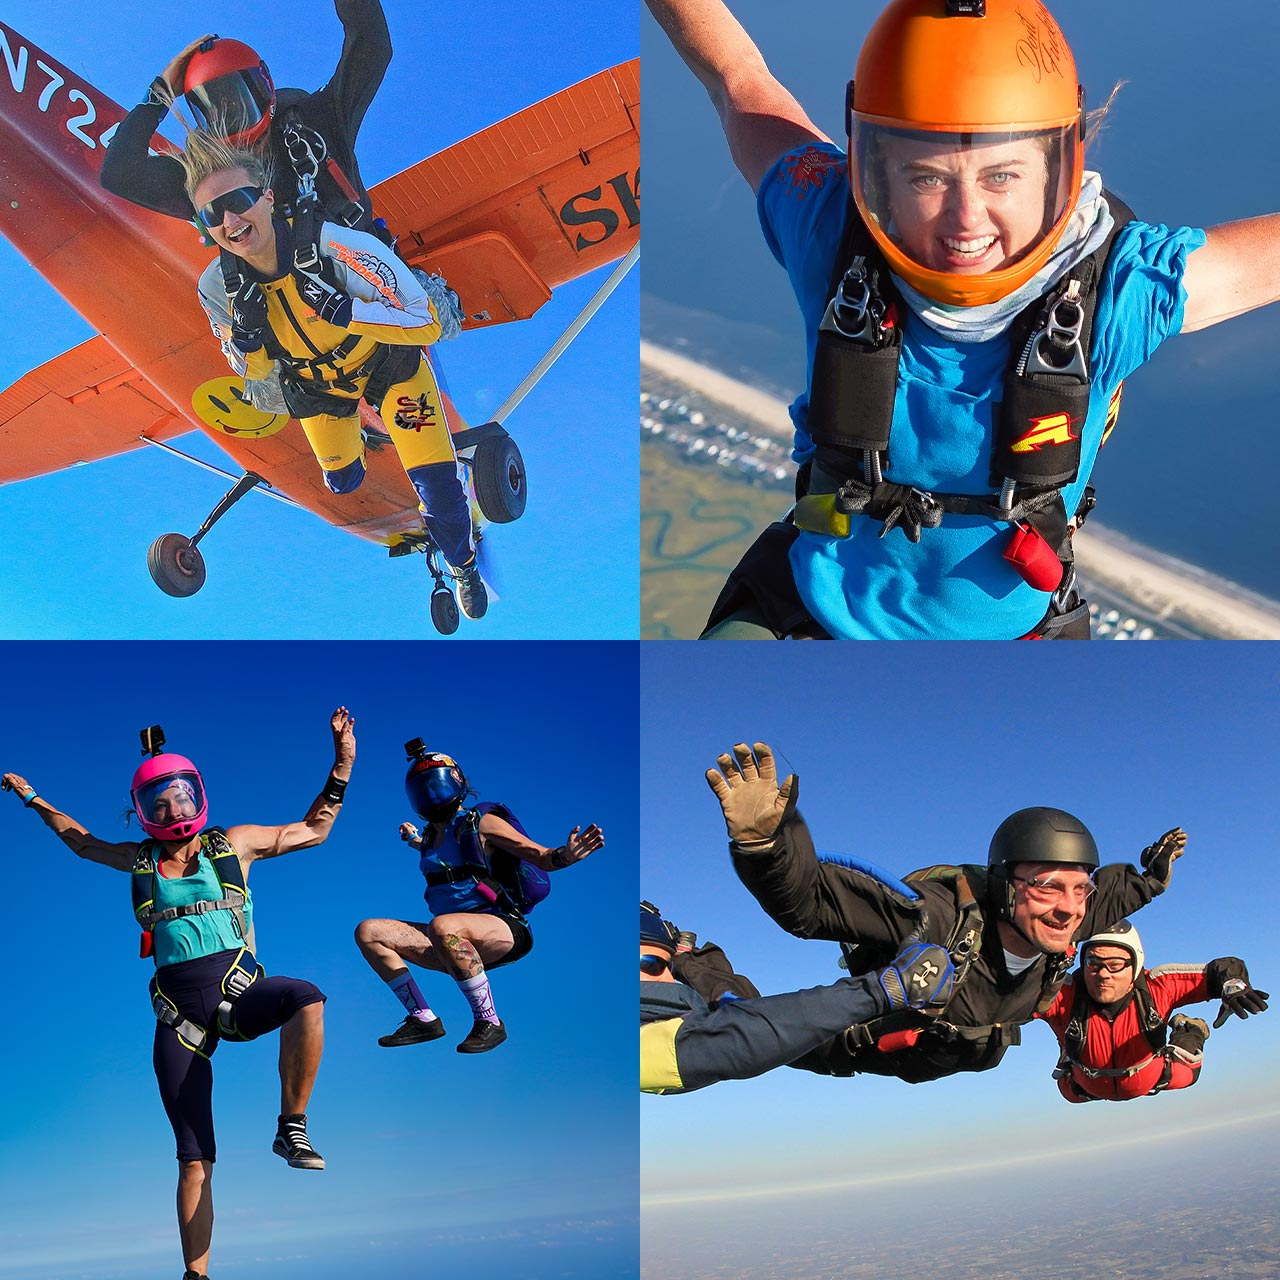 Grid image from top left to right of tandem skydiving instructor and student exiting plane, smiling female freeflying, accelerated freefall student, and two skydivers freeflying